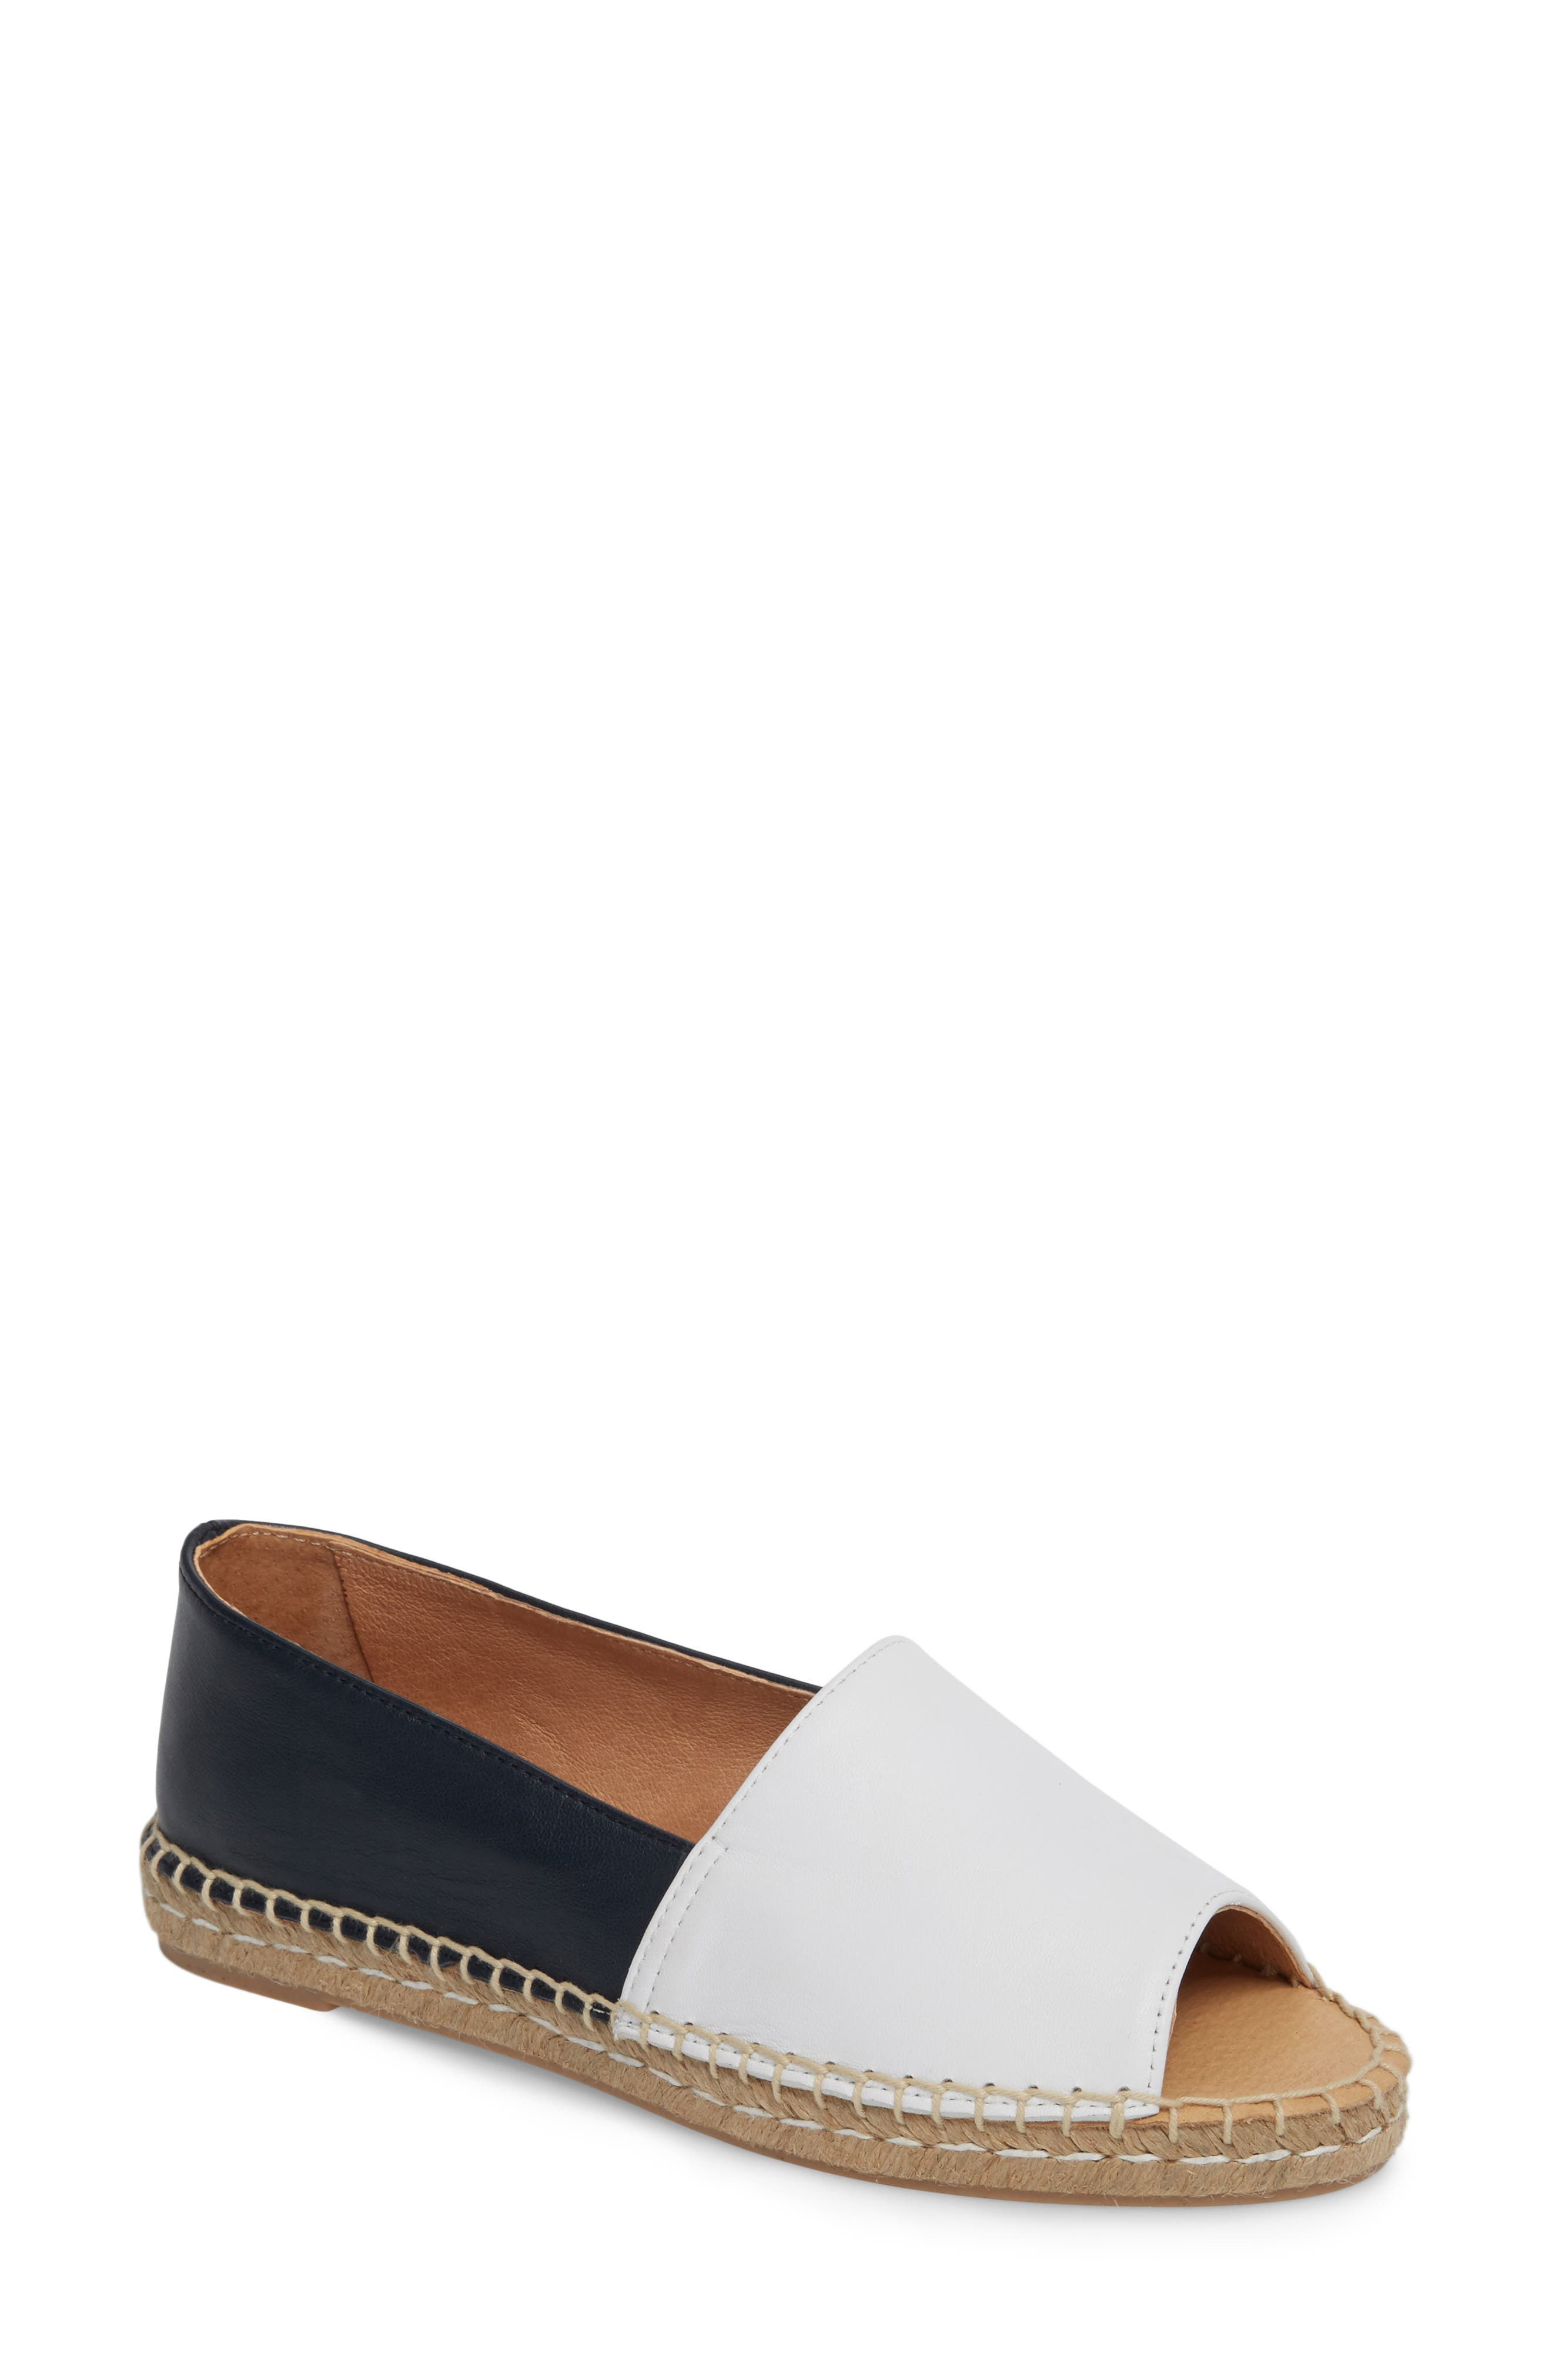 Milly Espadrille,                             Main thumbnail 1, color,                             415